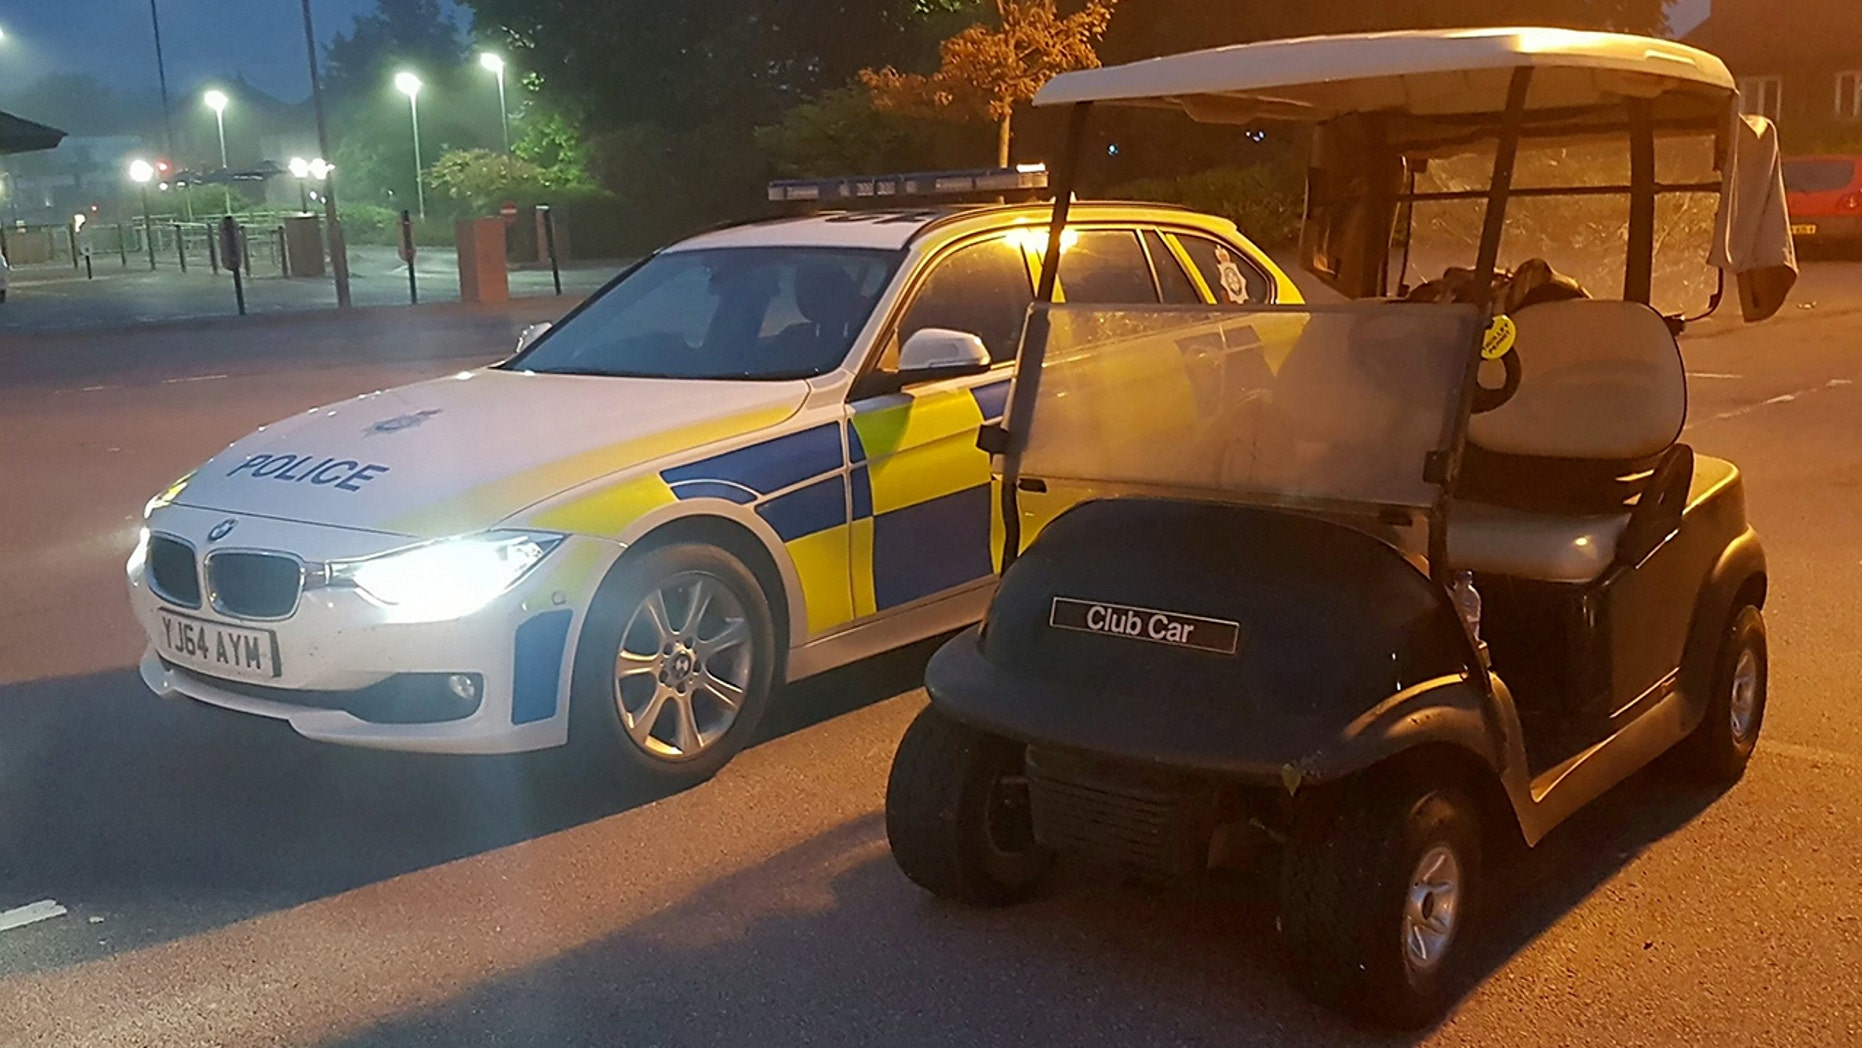 The stolen Golf Buggy. See Ross Parry story RPYBUGGY; Teenager due to appear at Northallerton Mags charged with drink driving after police stopped him in a golf buggy at a McDonald's drive-thru.